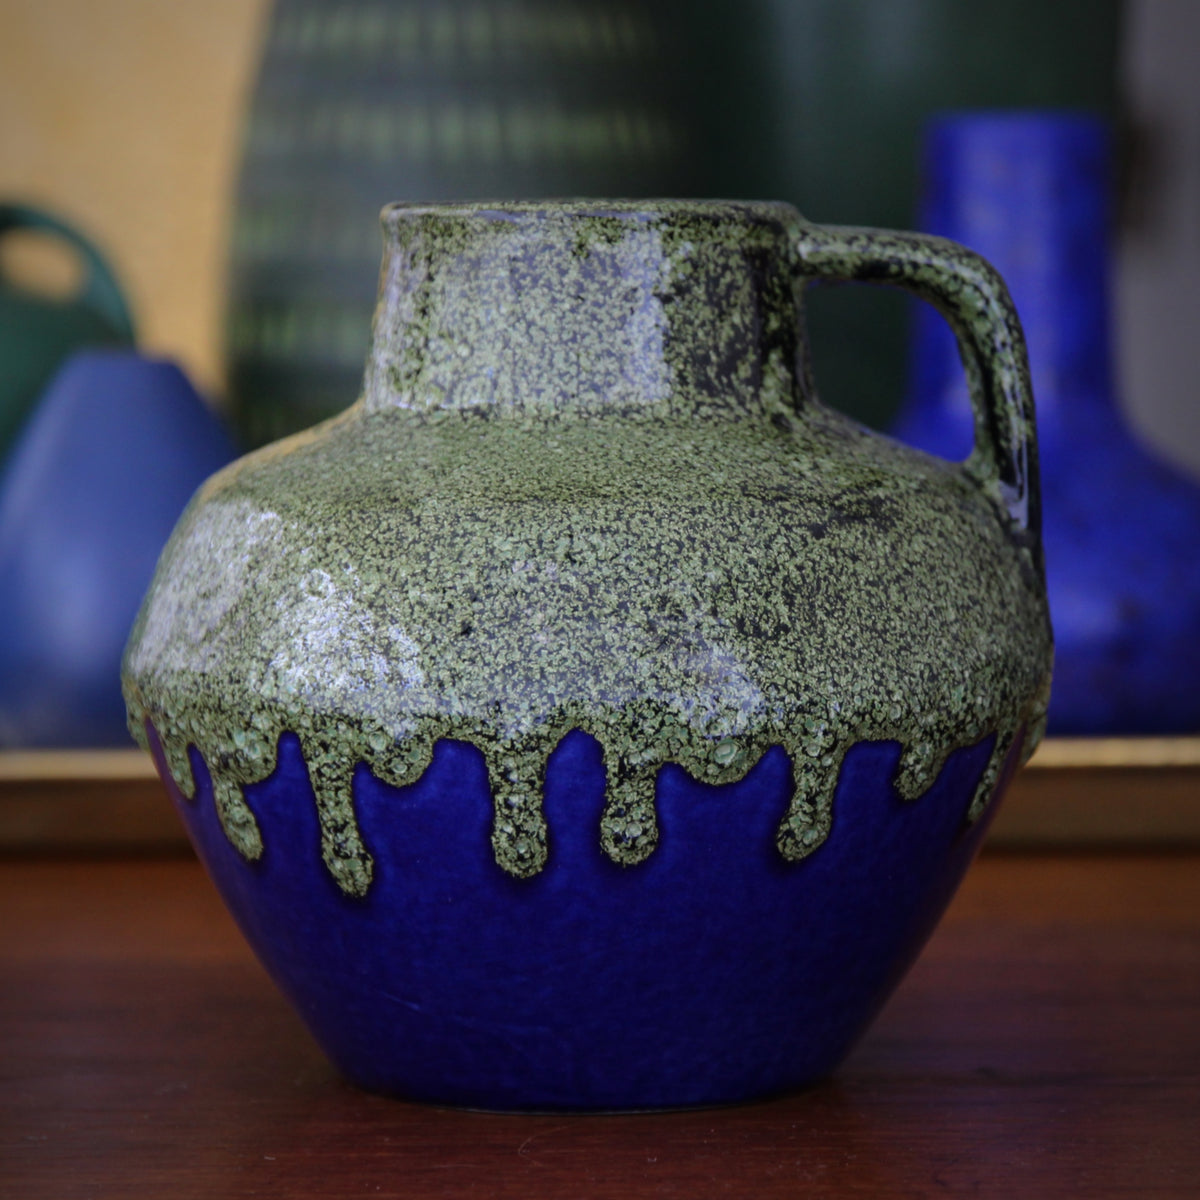 Pesto & Cobalt Pitcher